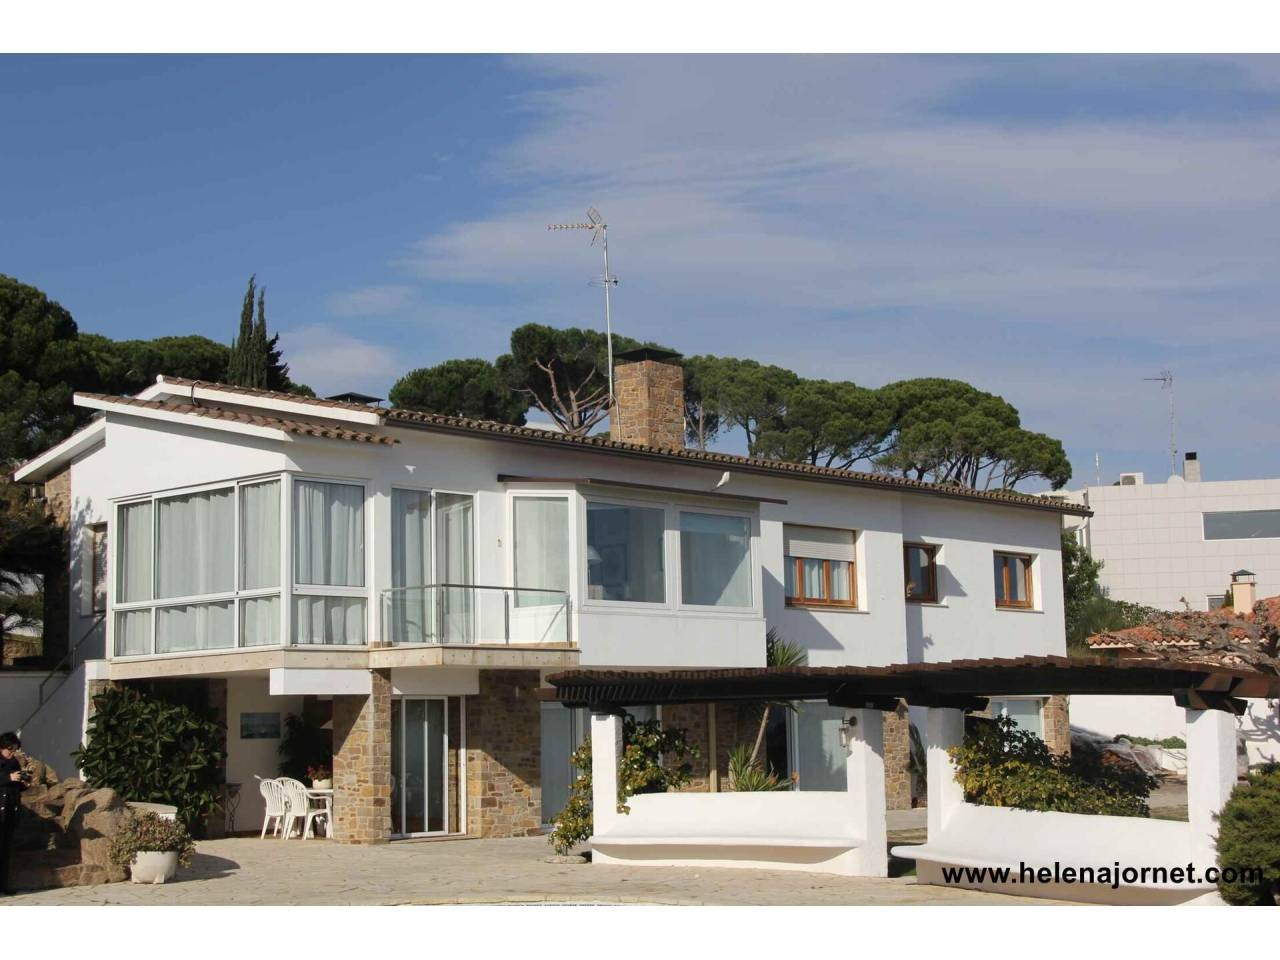 Sensational house with spectacular views to Sant Pol's bay - 2809